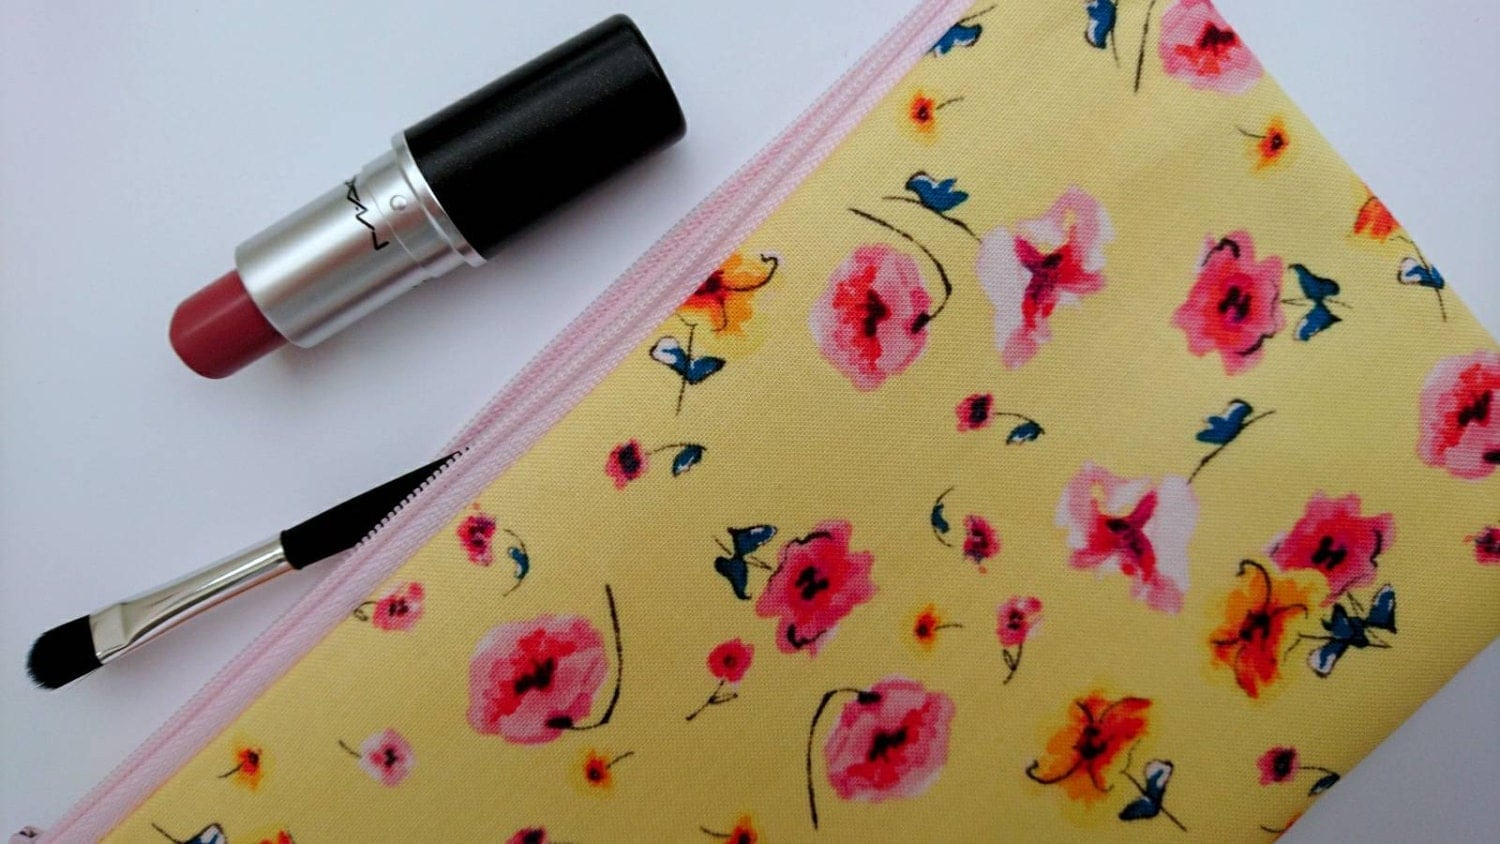 Girlfriend gift yellow makeup bag floral toiletry bag floral zipper pouch cotton travel pouch yellow gift